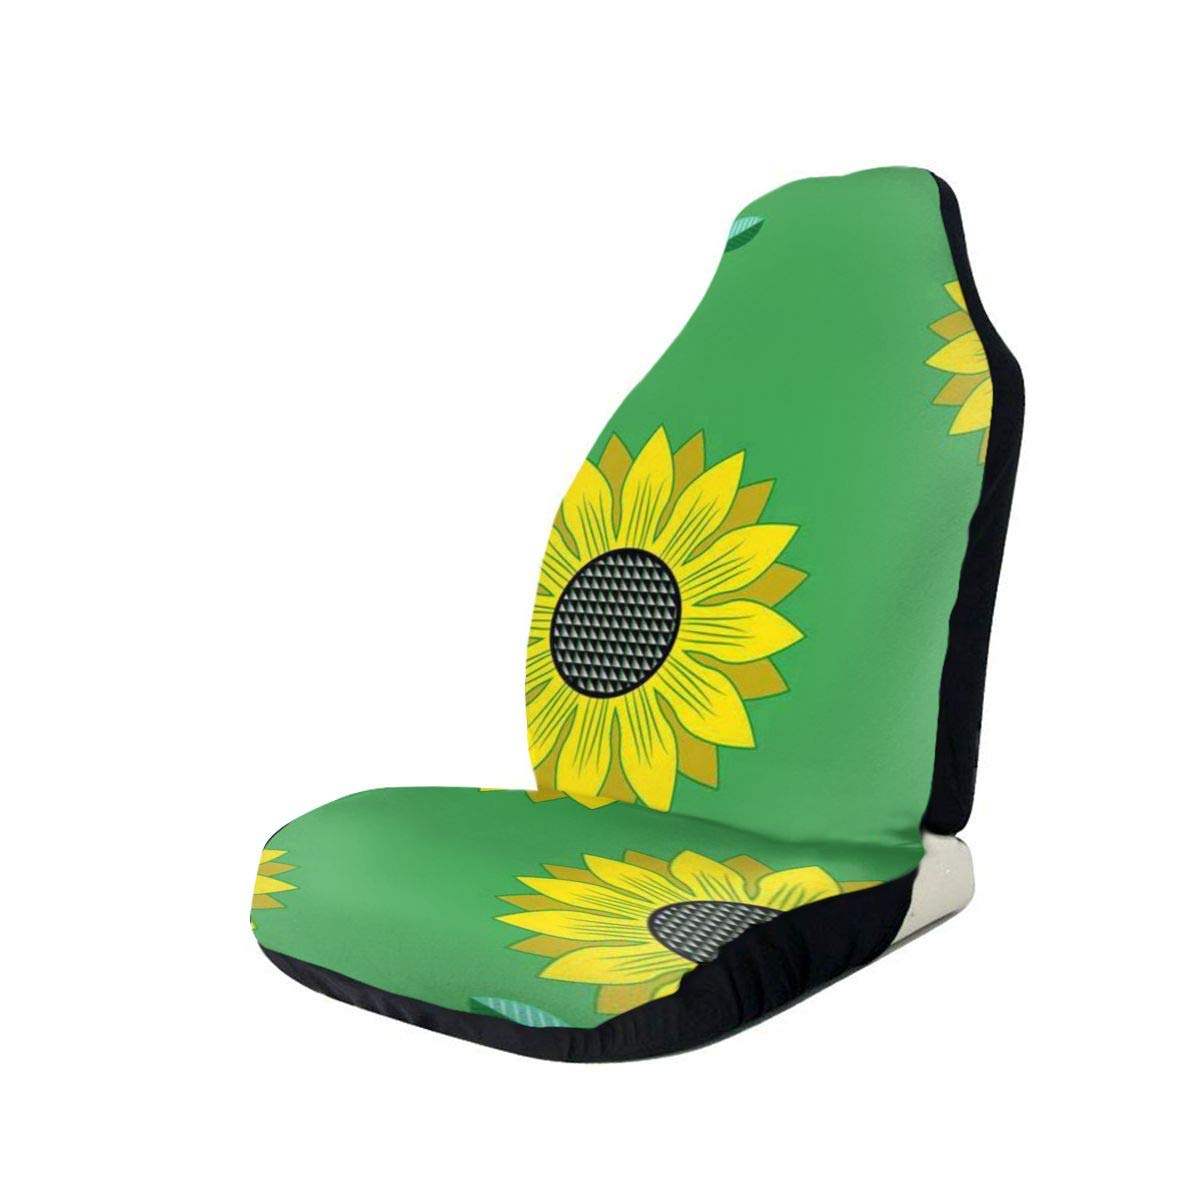 Car Seat Cover Green Sunflower Car Seat Protector,Waterproof Anti-Slip Durable Soft Car Seat Covers for Universal Size Fits for Cars,Trucks & Suvs